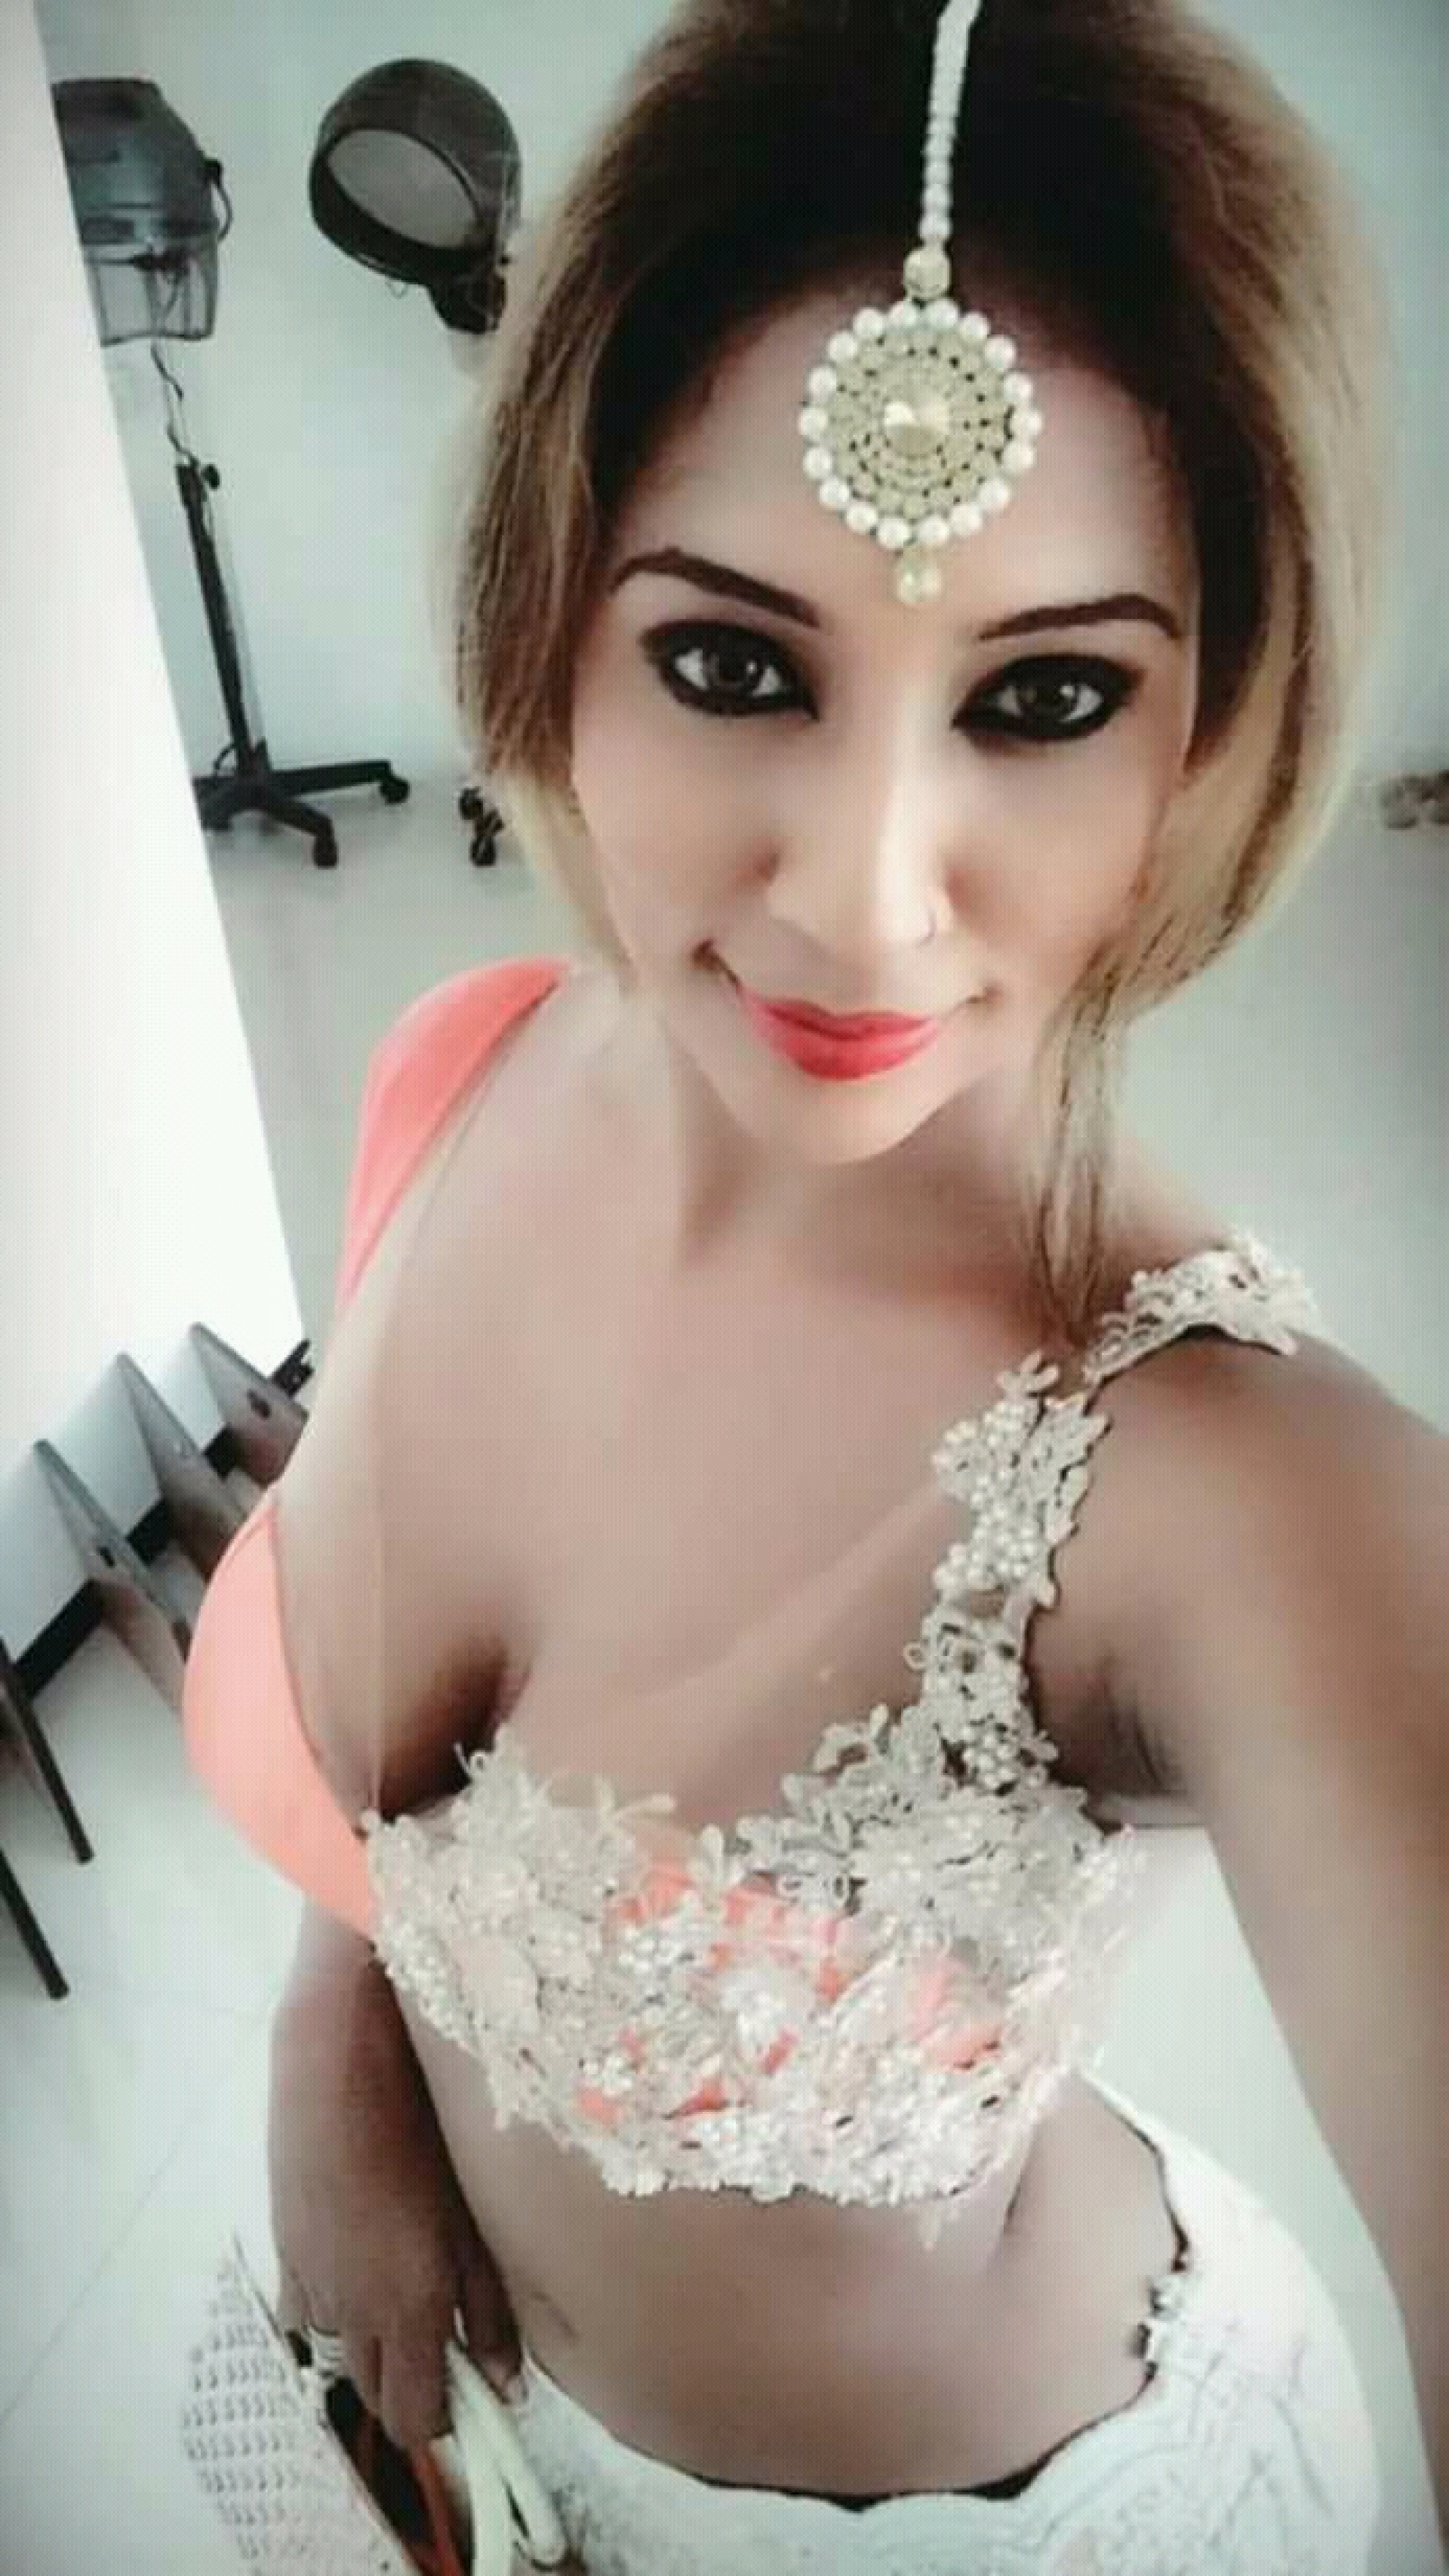 Sri lankan sexy girls pictures